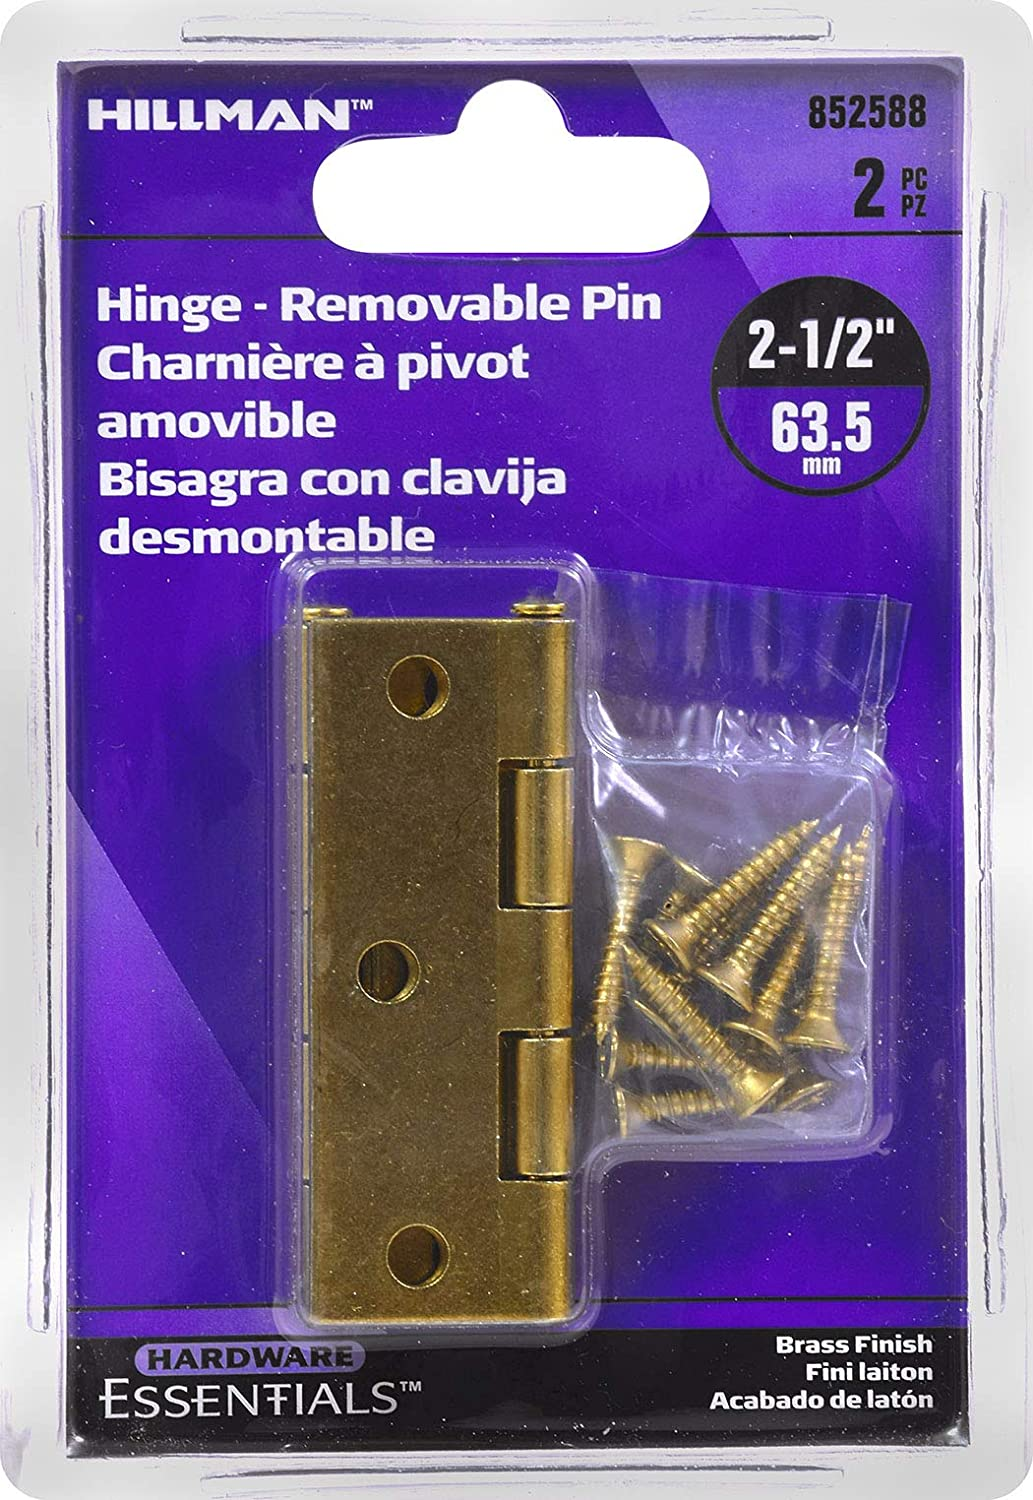 Hillman Hardware Essentials 852588 Light Narrow Door Hinges and Fixed Pin Brass 2-1//2-2 pack The Hillman Group